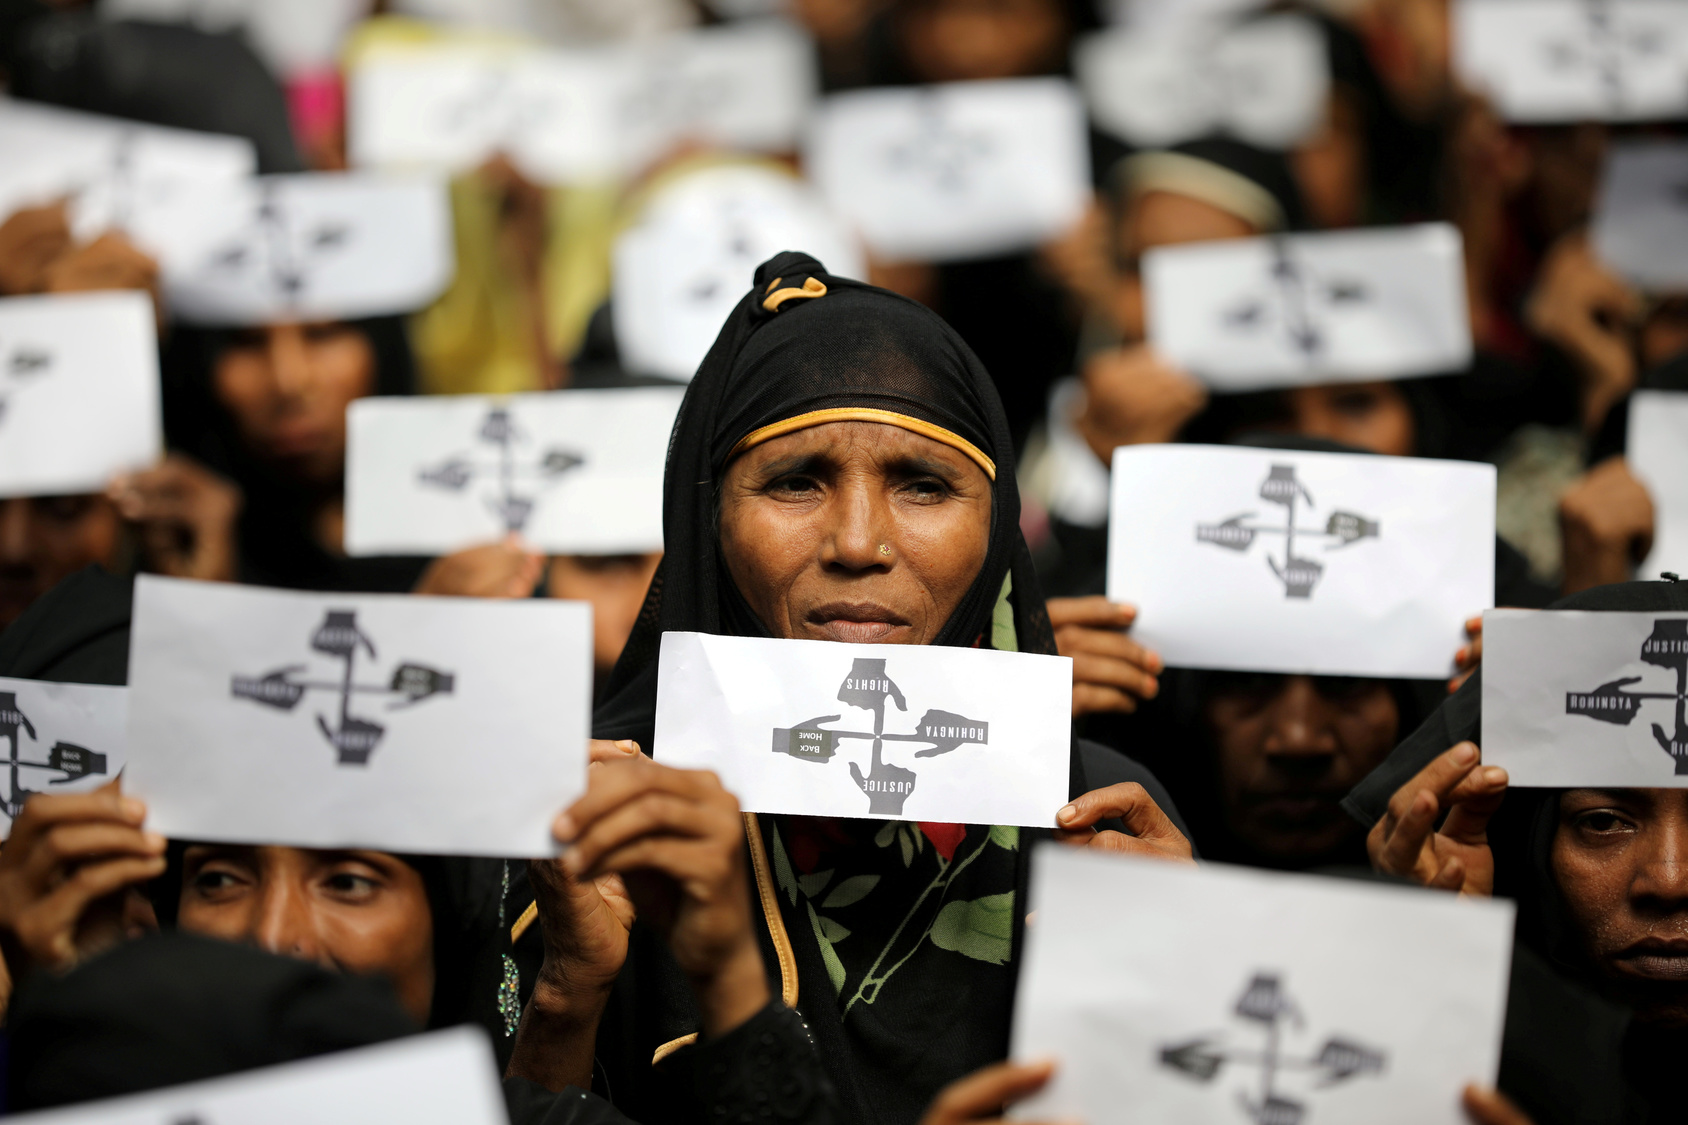 Rohingya refugee women hold placards as they take part in a protest at the Kutupalong refugee camp to mark the one-year anniversary of their exodus in Cox's Bazar, Bangladesh